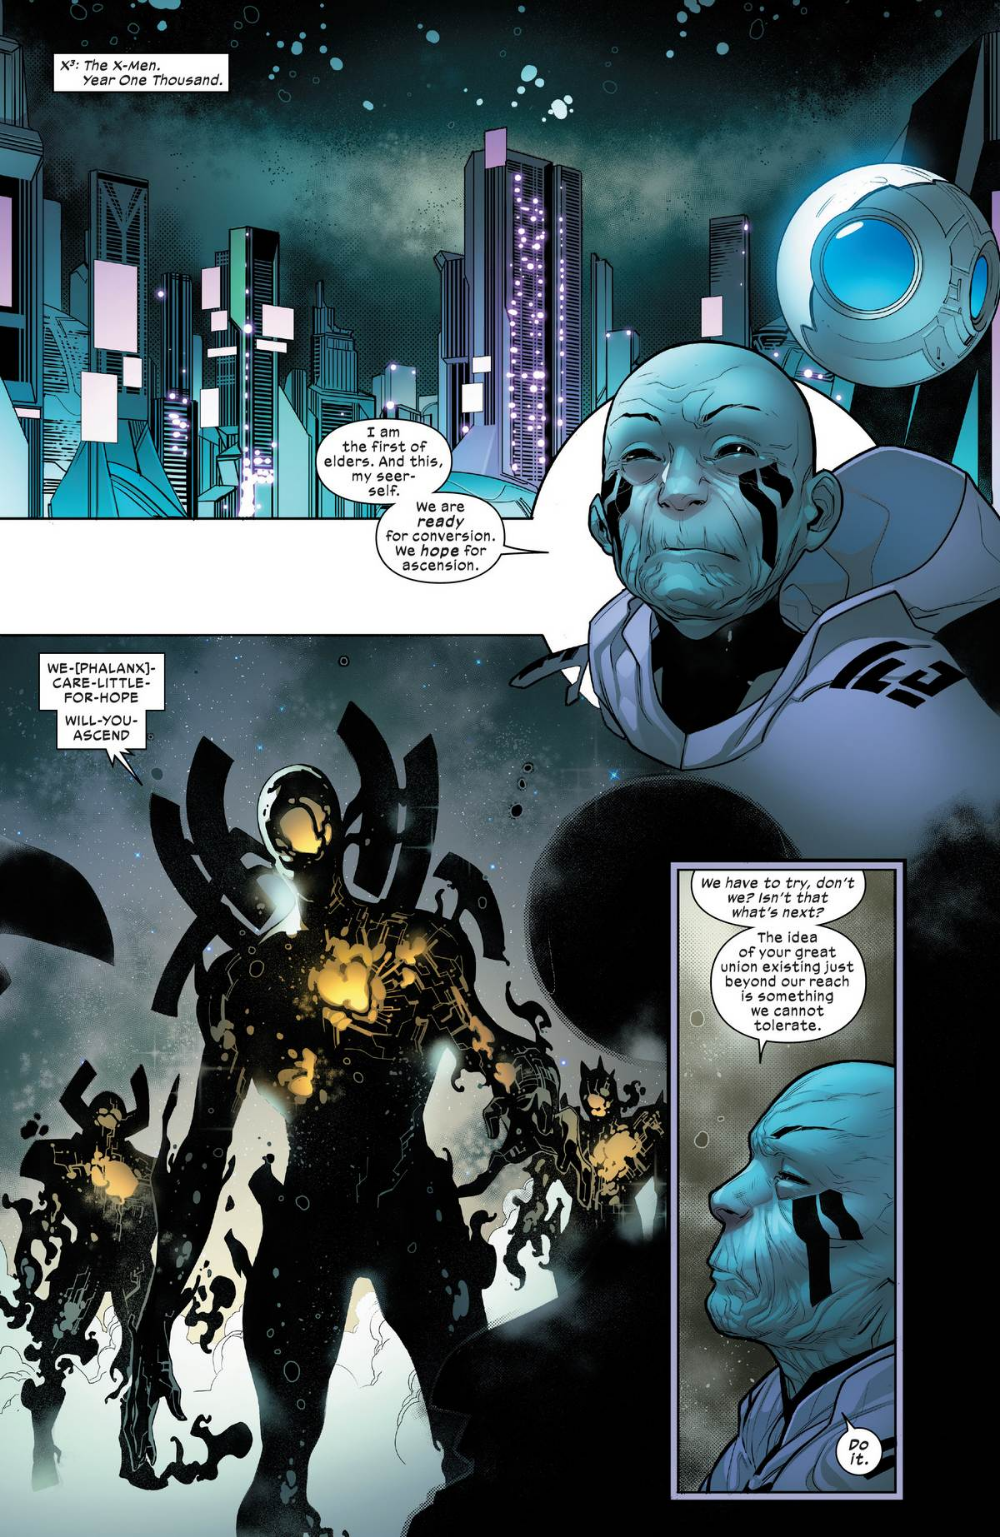 Pin By Mike Becker On Rb Silva In 2020 Xmen Comics Character Design Comic Page